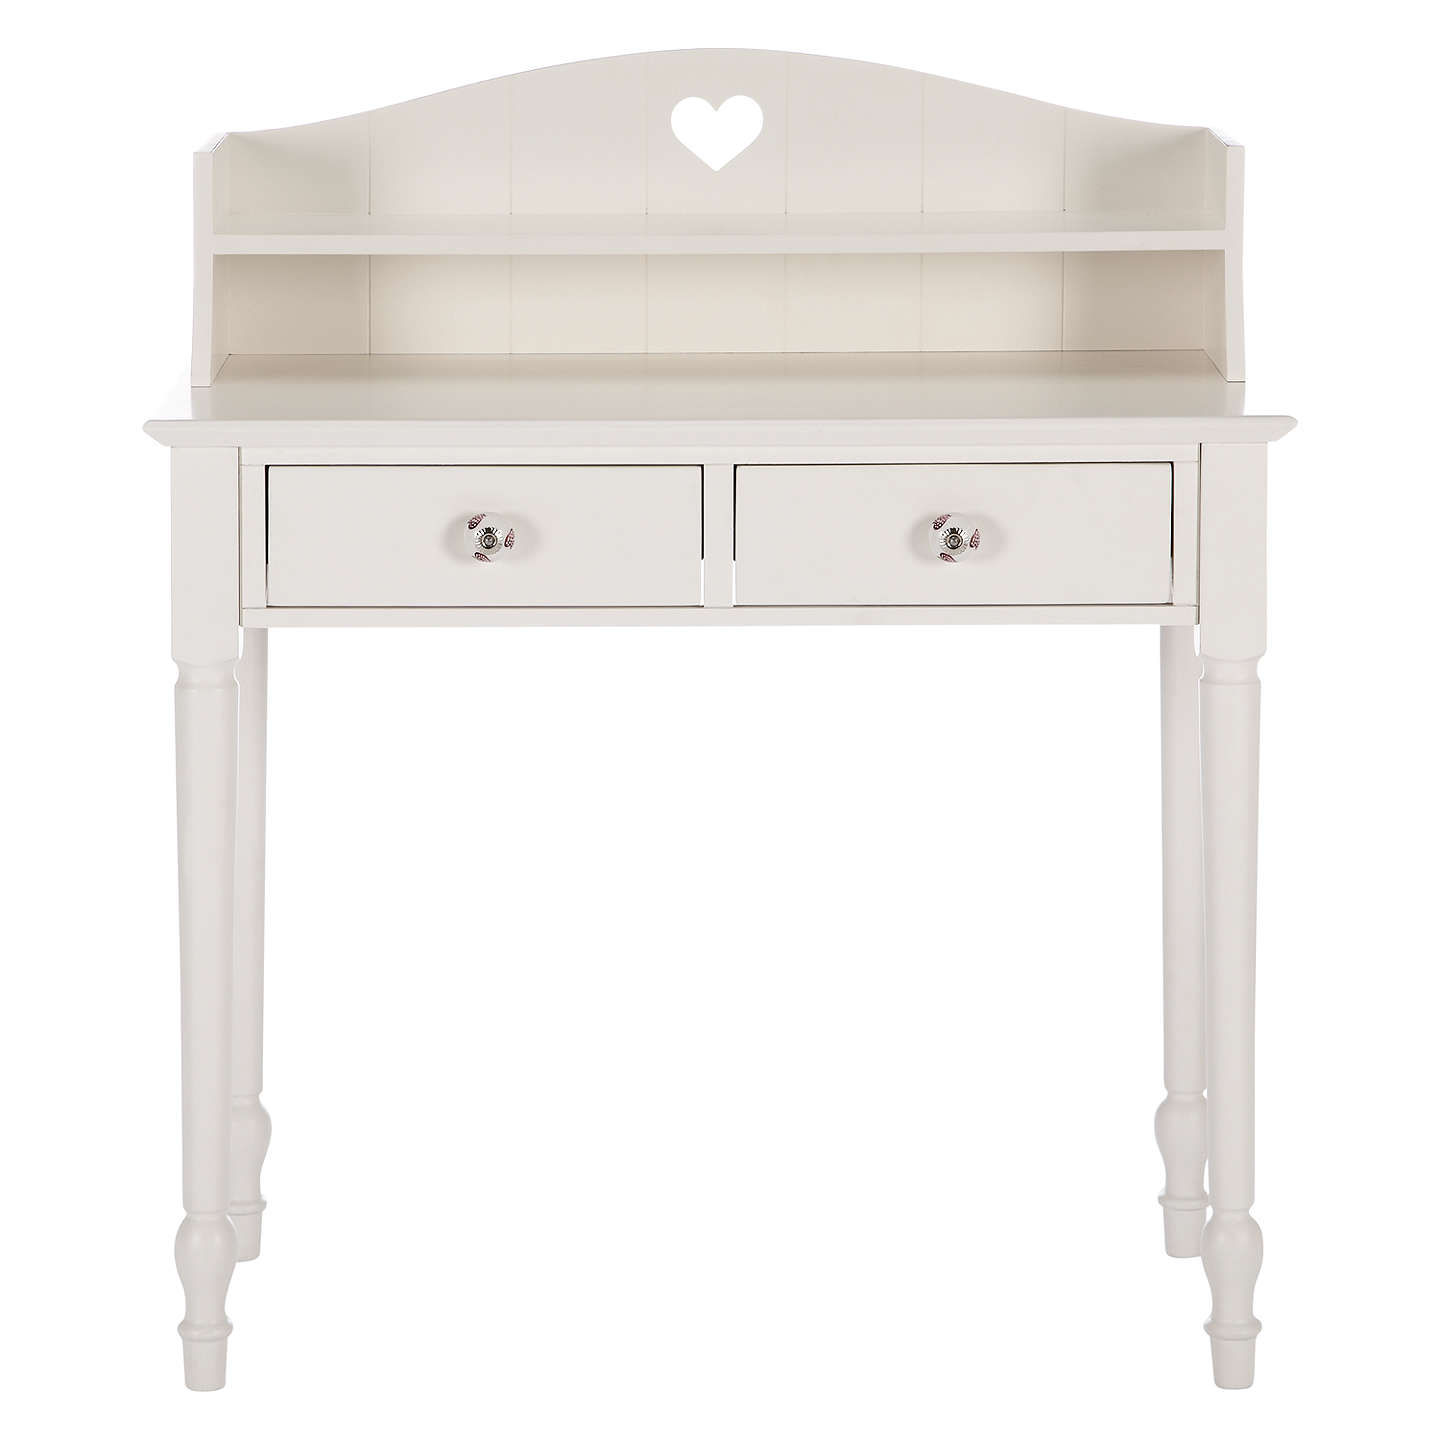 Buylittle Home At John Lewis Victoria Dressing Table And Top, White Online  At Johnlewis.